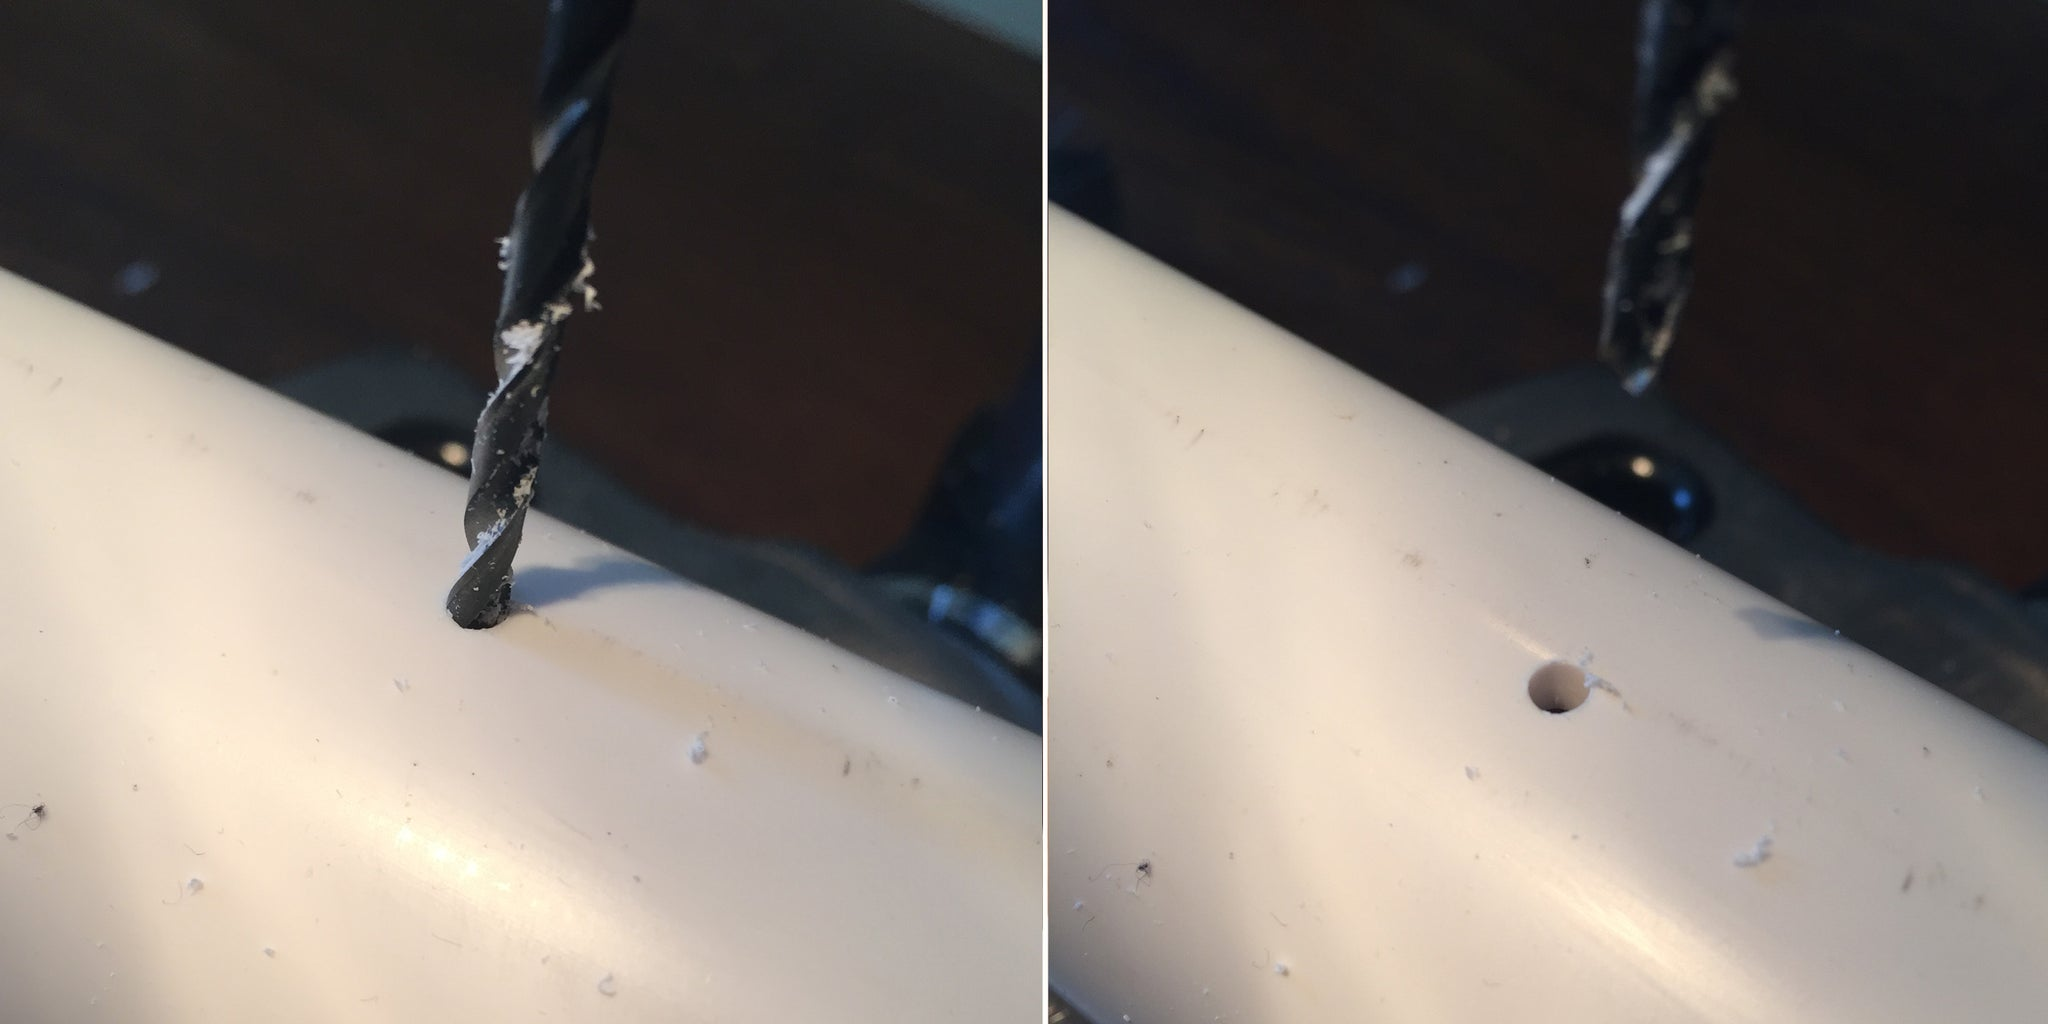 Drill Holes Through the PVC Pipe